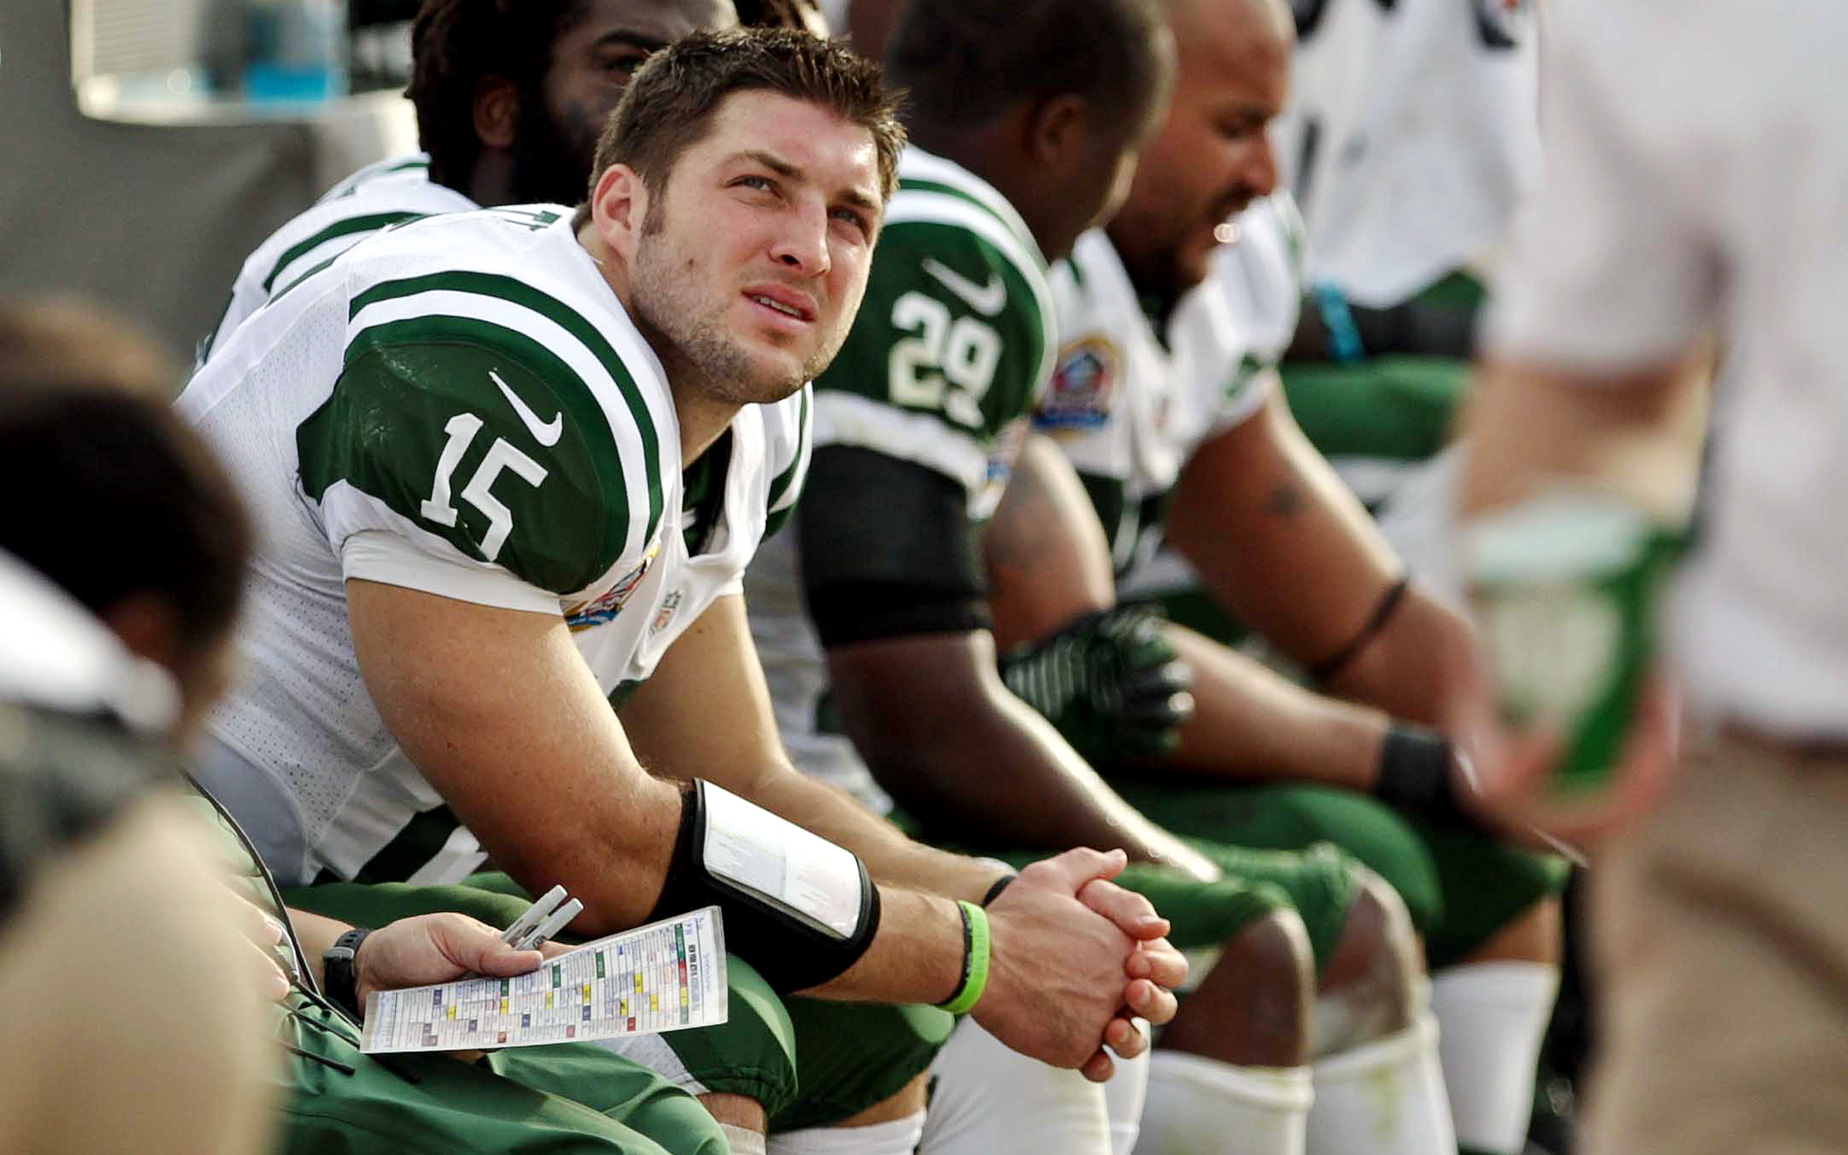 Tebow The 'Terrible' -- Nov. 14